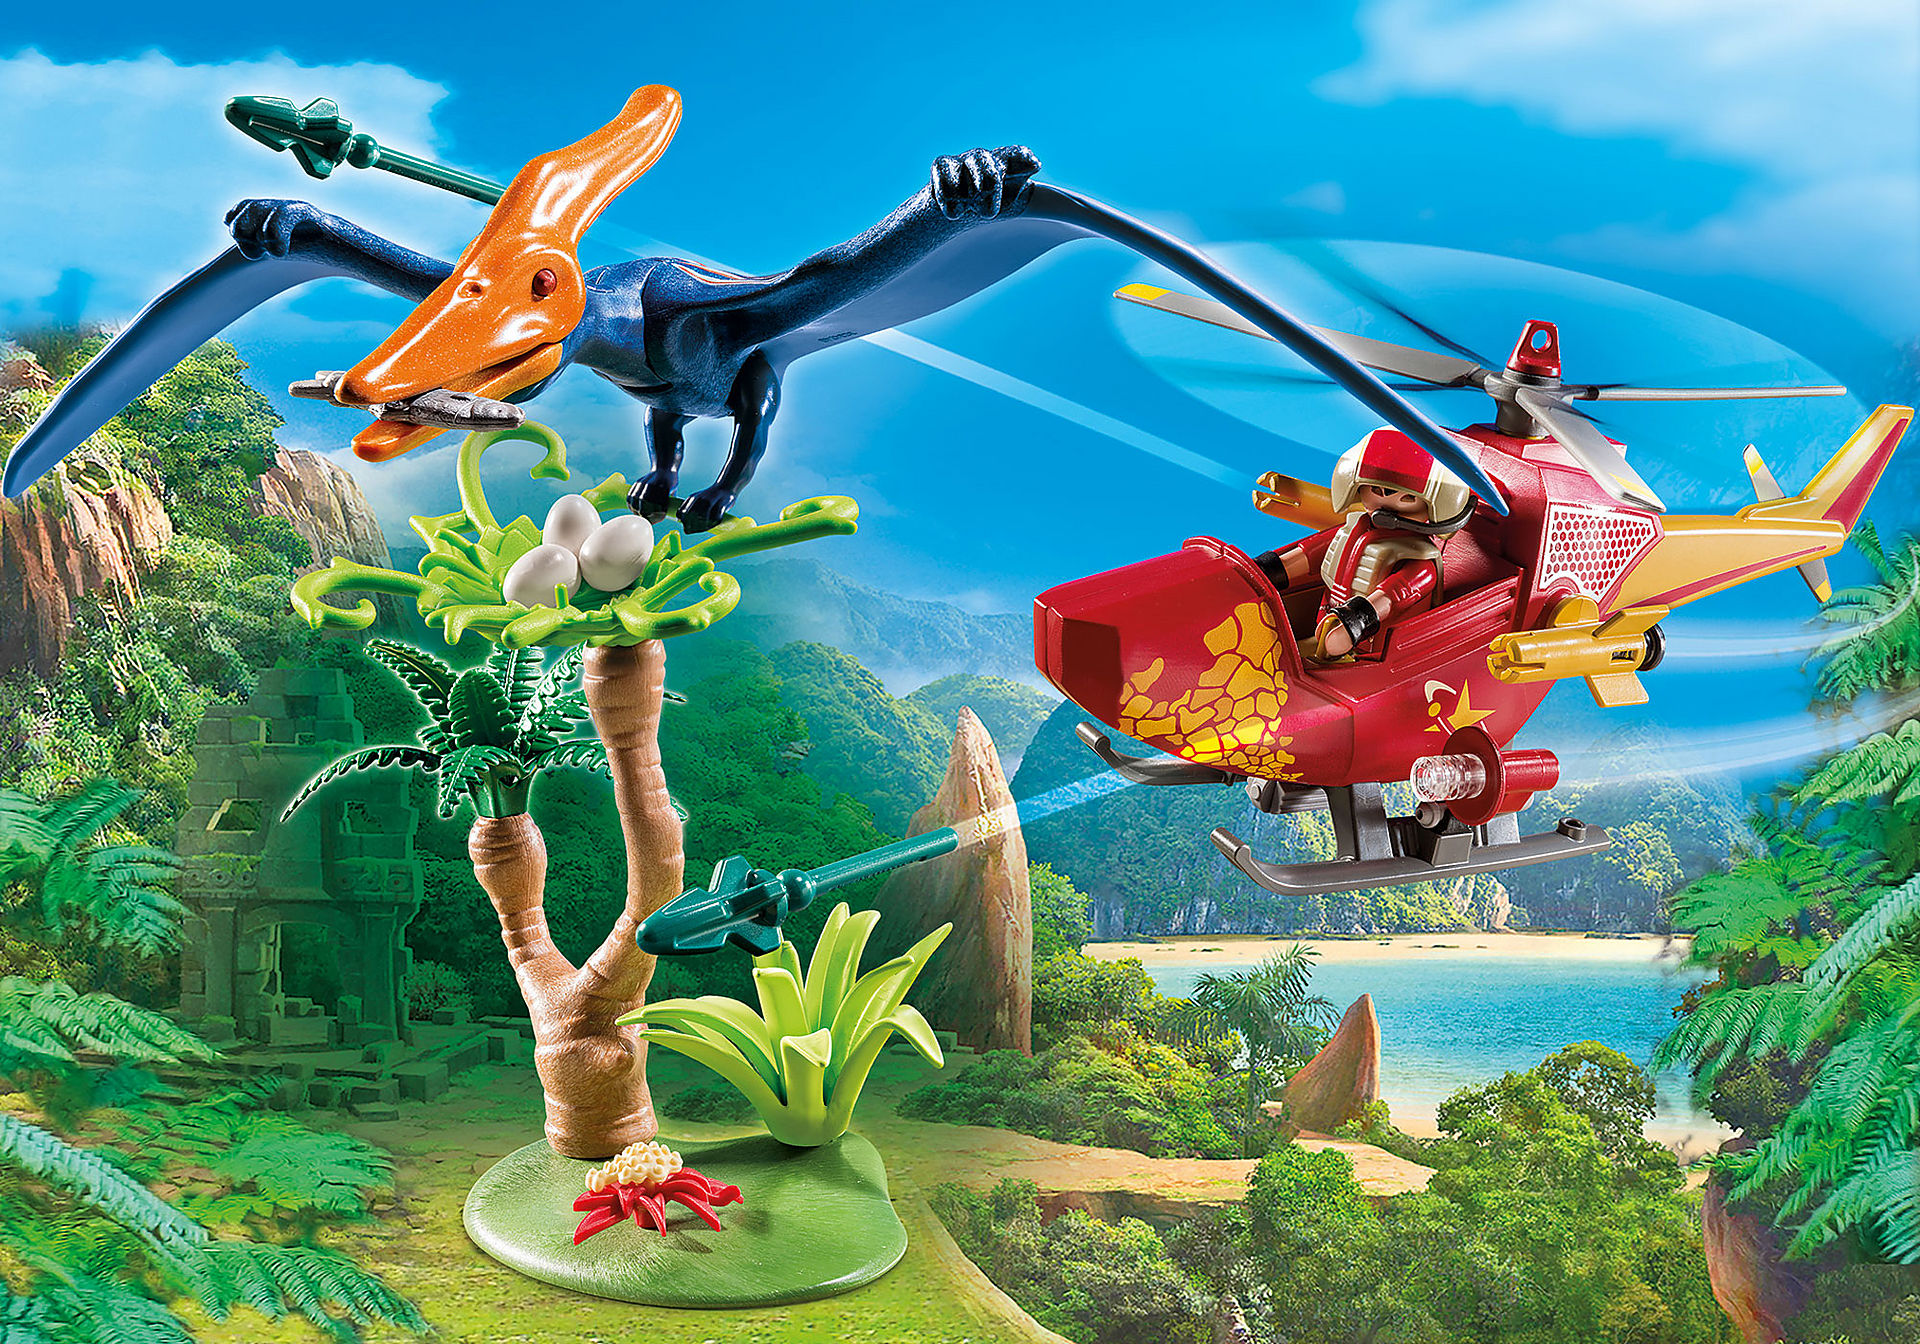 http://media.playmobil.com/i/playmobil/9430_product_detail/Helikopter mit Flugsaurier